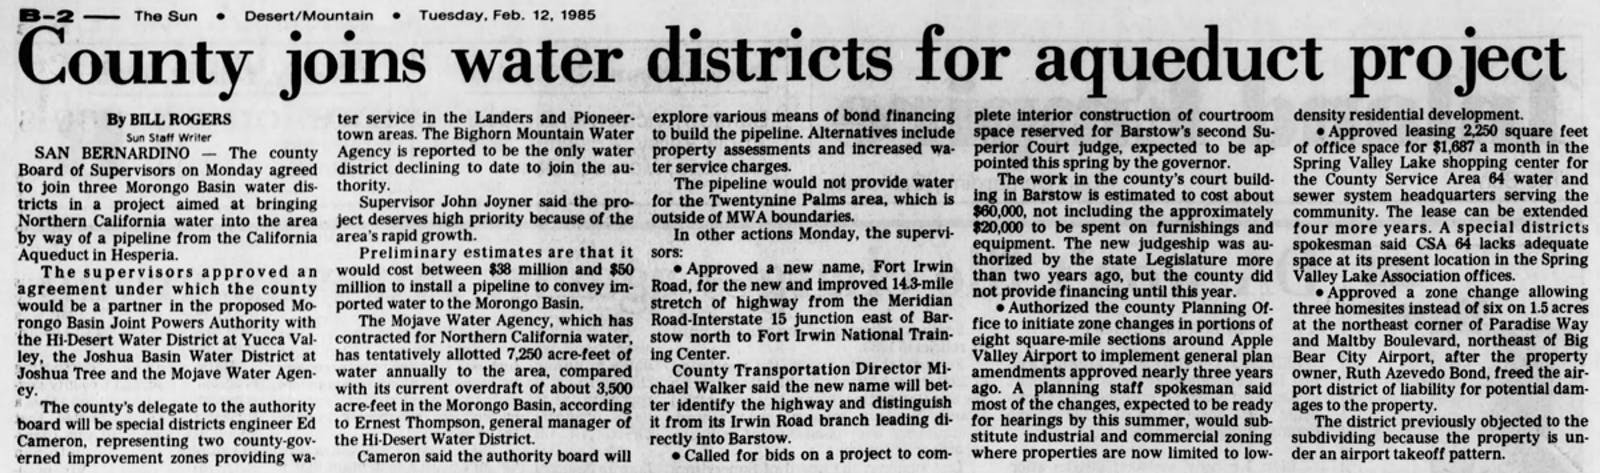 water district project article clipping